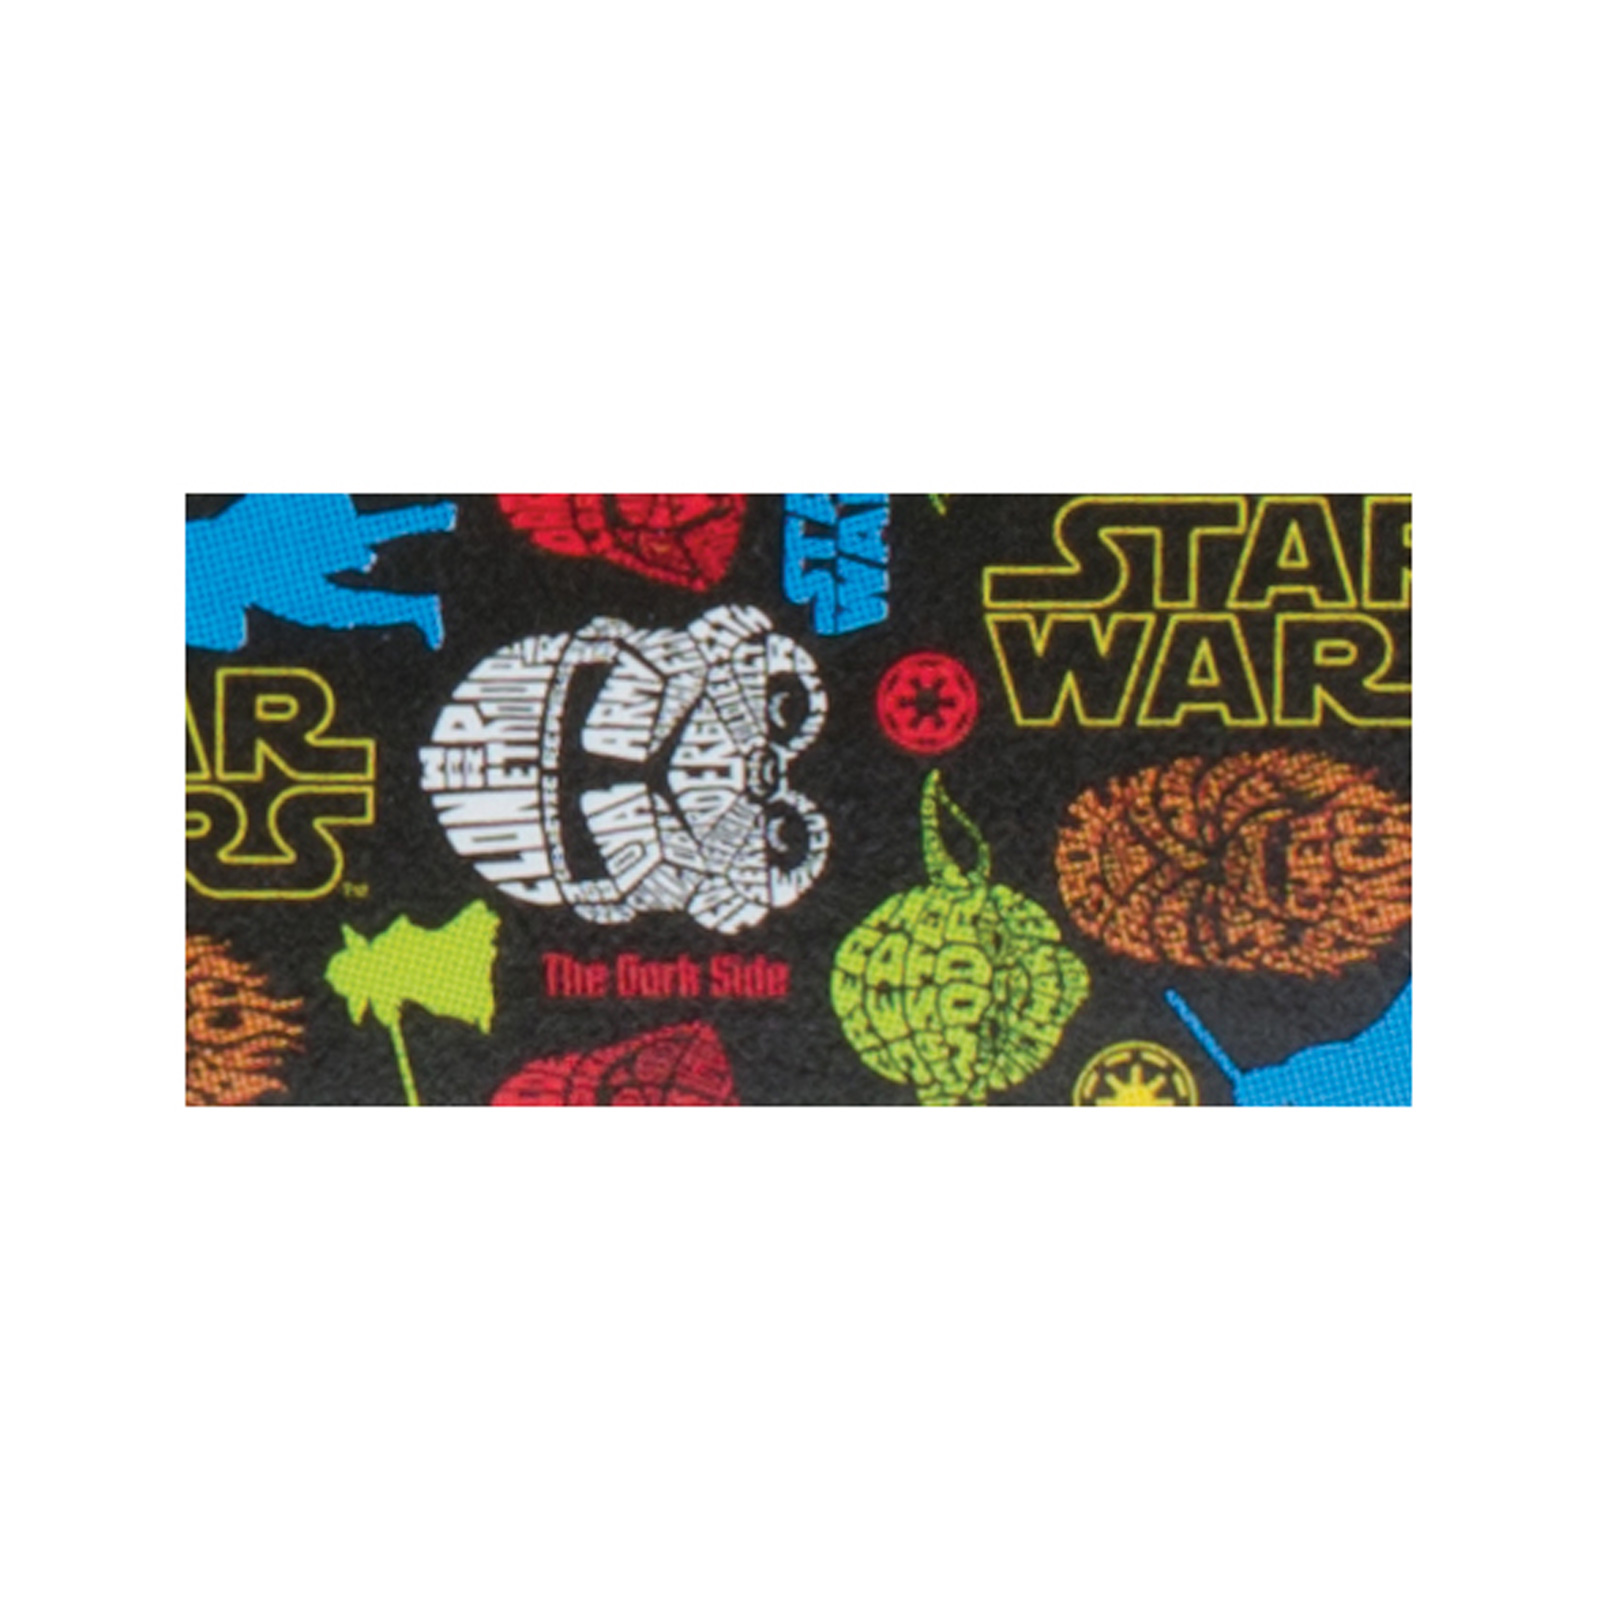 Licensed Duck Tape 1.88'' x 10yd-Star Wars by Notions Marketing in USA